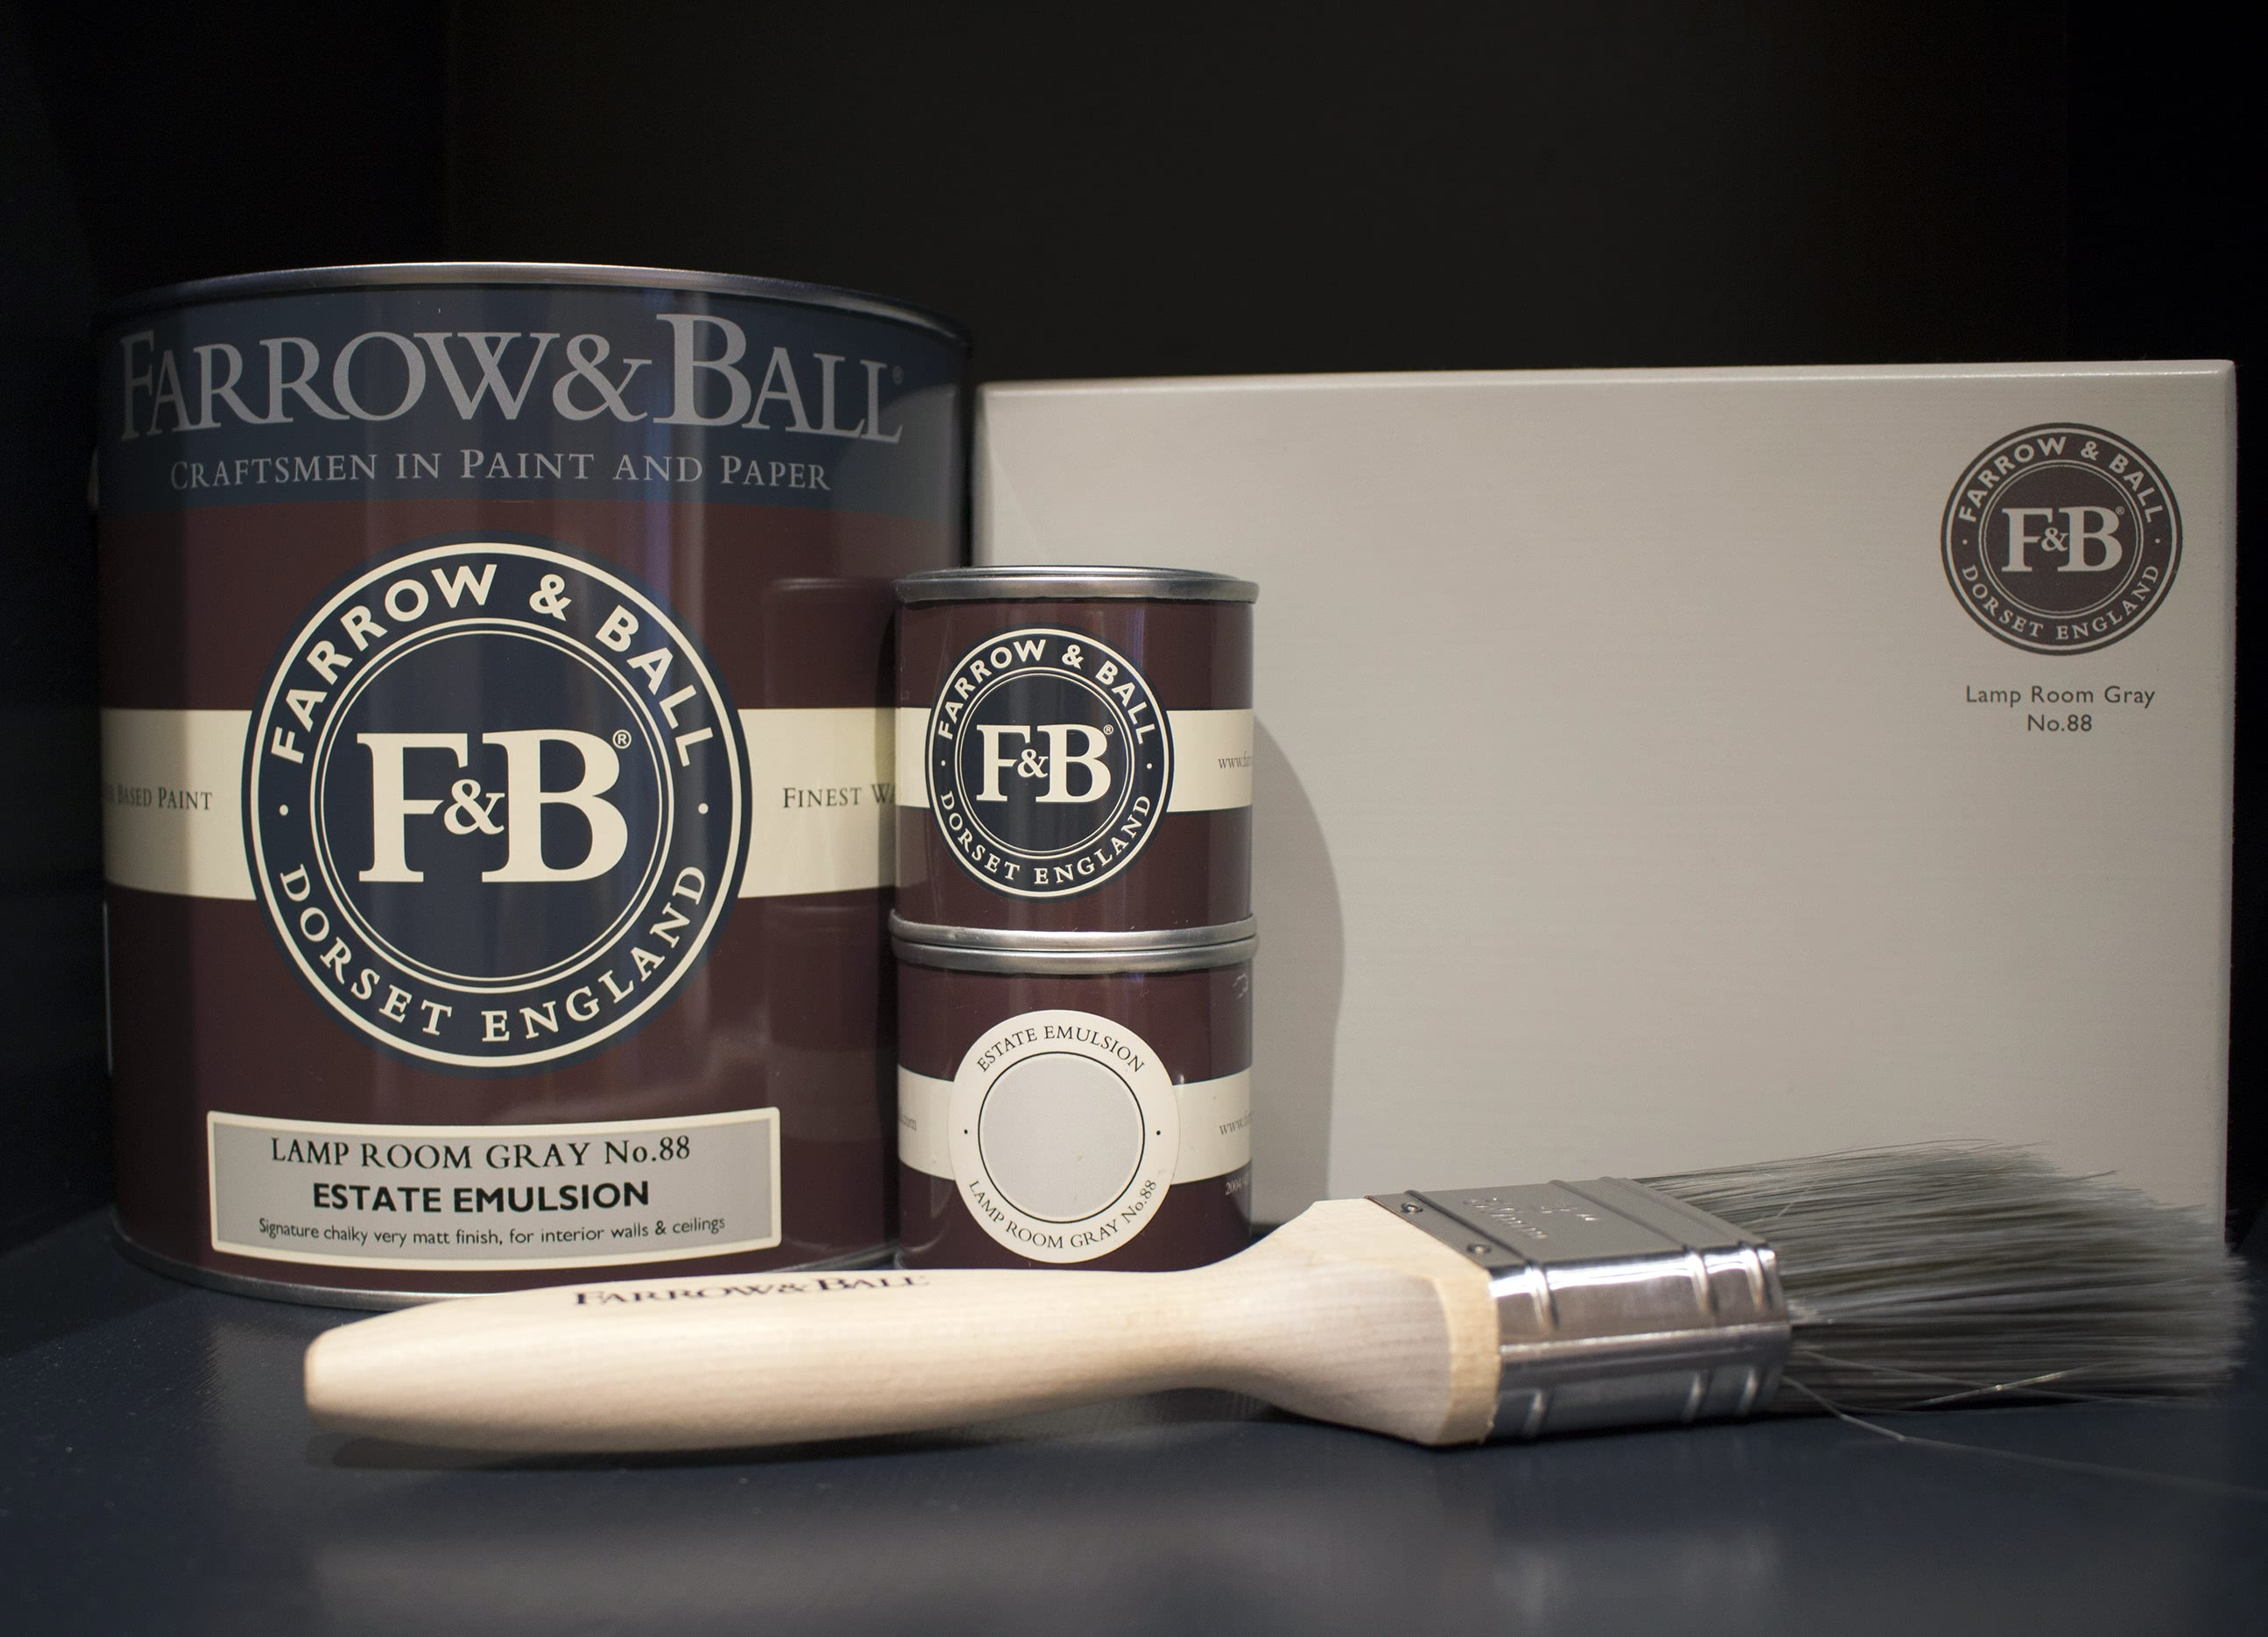 farrow&ball, farrow and ball, paint, decorating, paint brush, lamp room gray